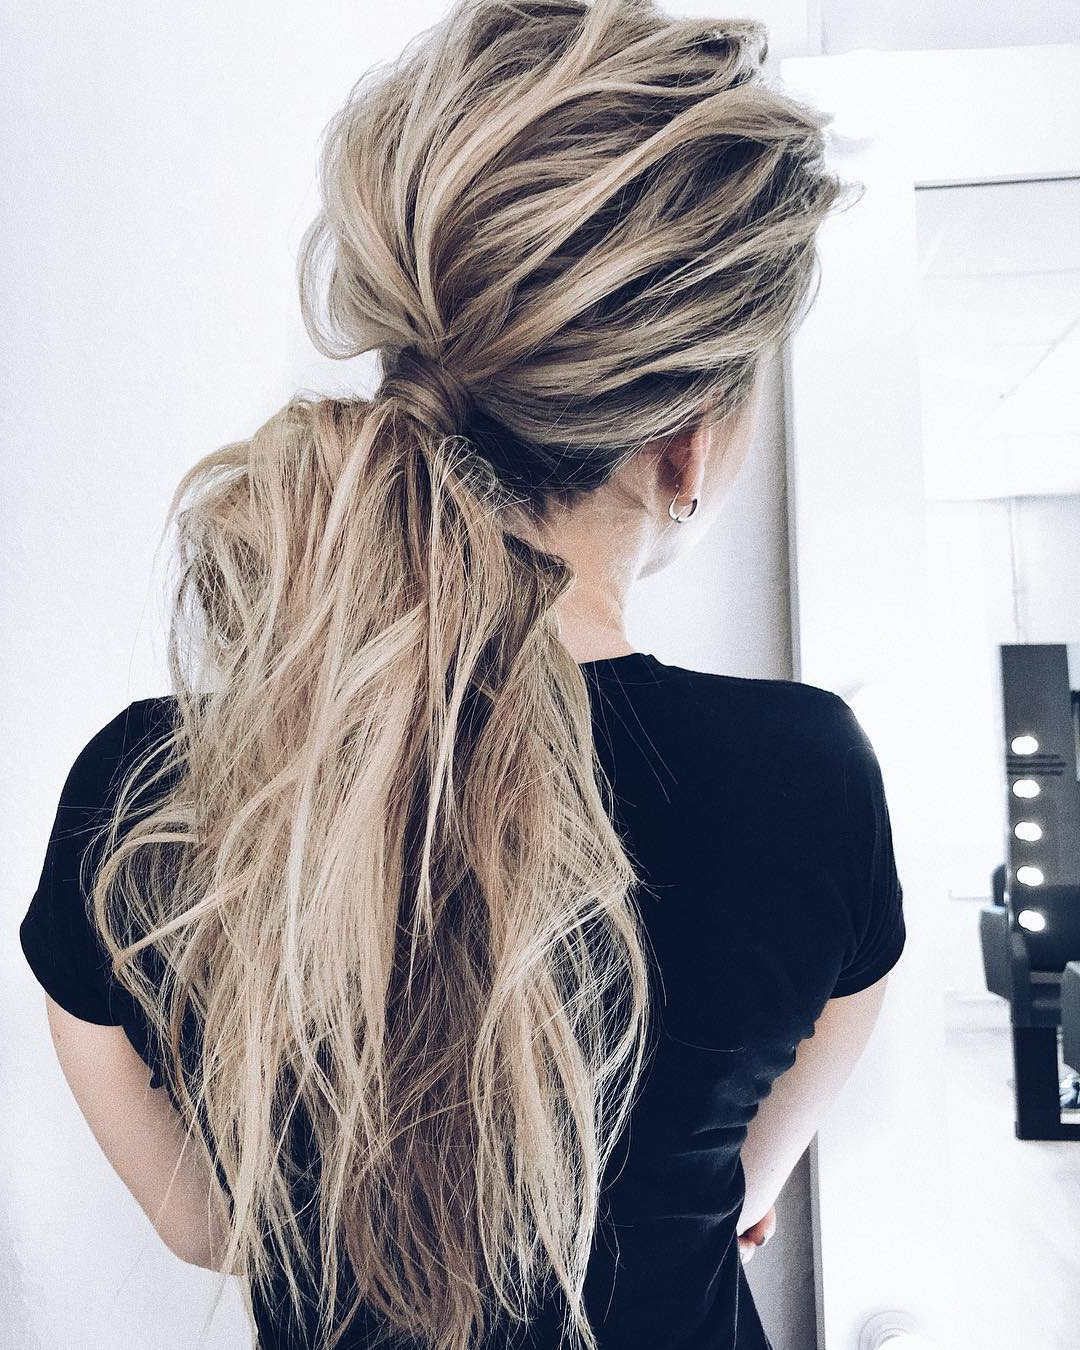 10 Creative Ponytail Hairstyles For Long Hair, Summer With Famous Loosely Tied Braided Hairstyles With A Ribbon (View 1 of 20)